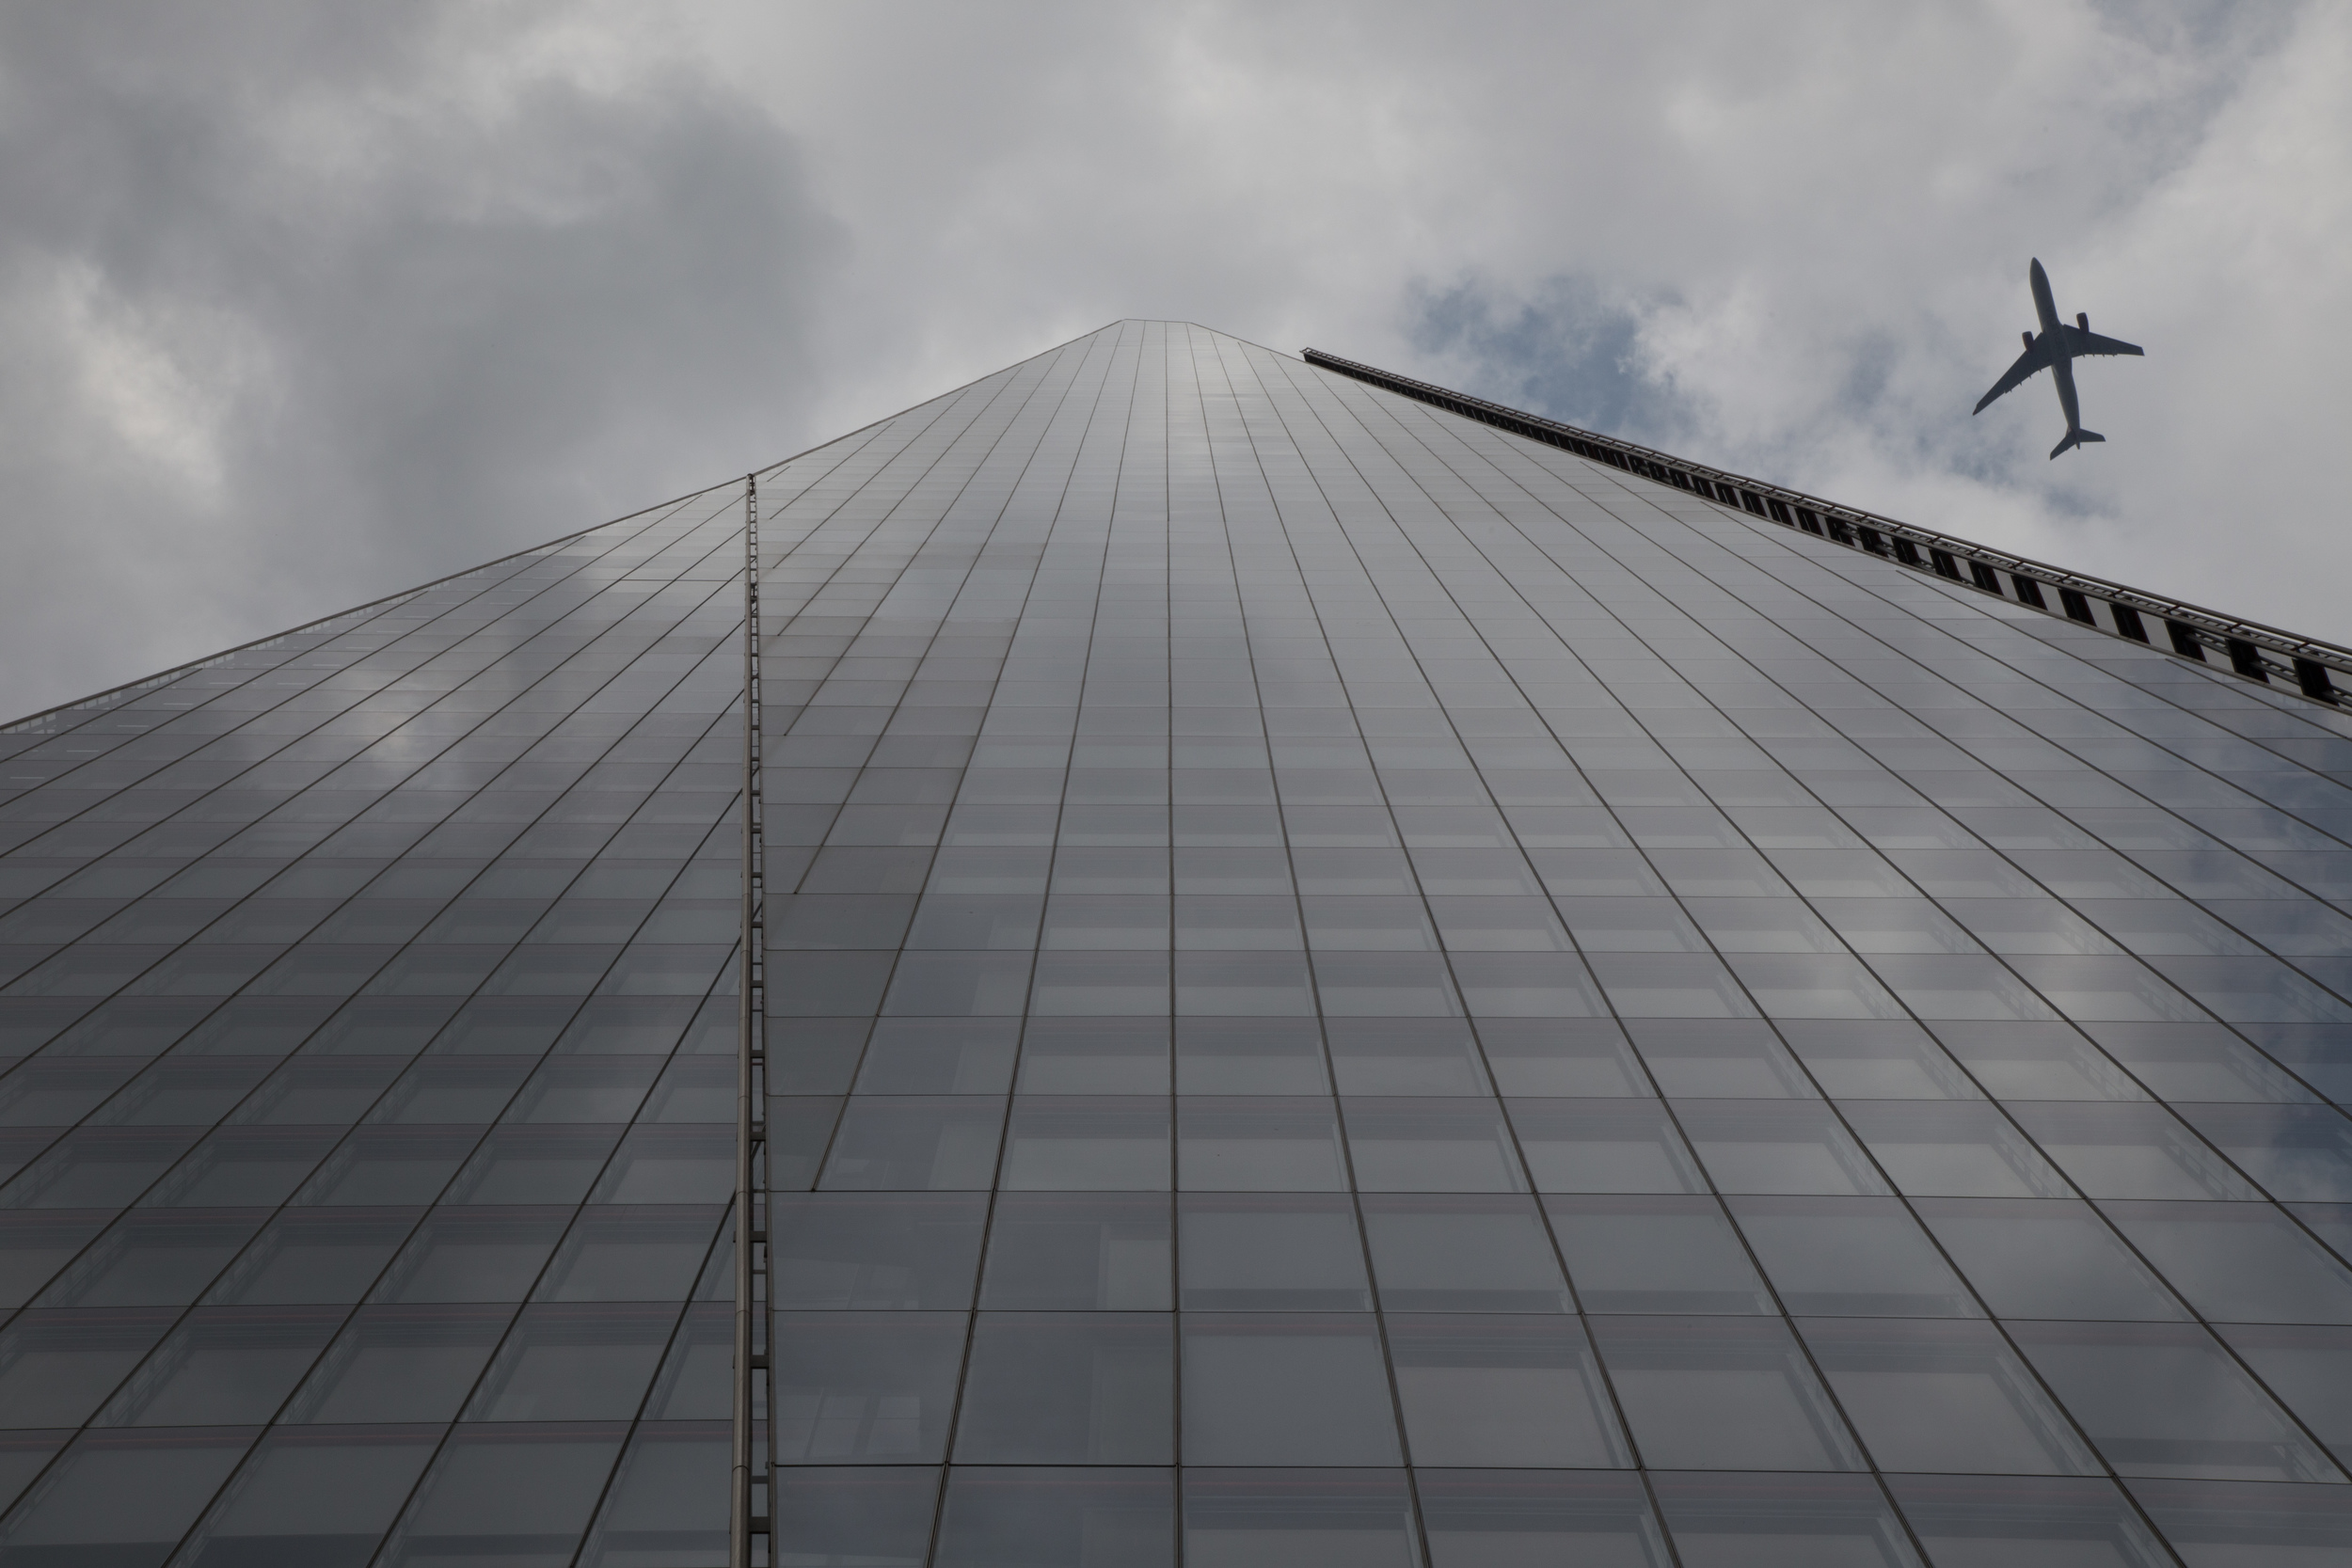 This is the RAW straight out of the camera shot of the Shard in London